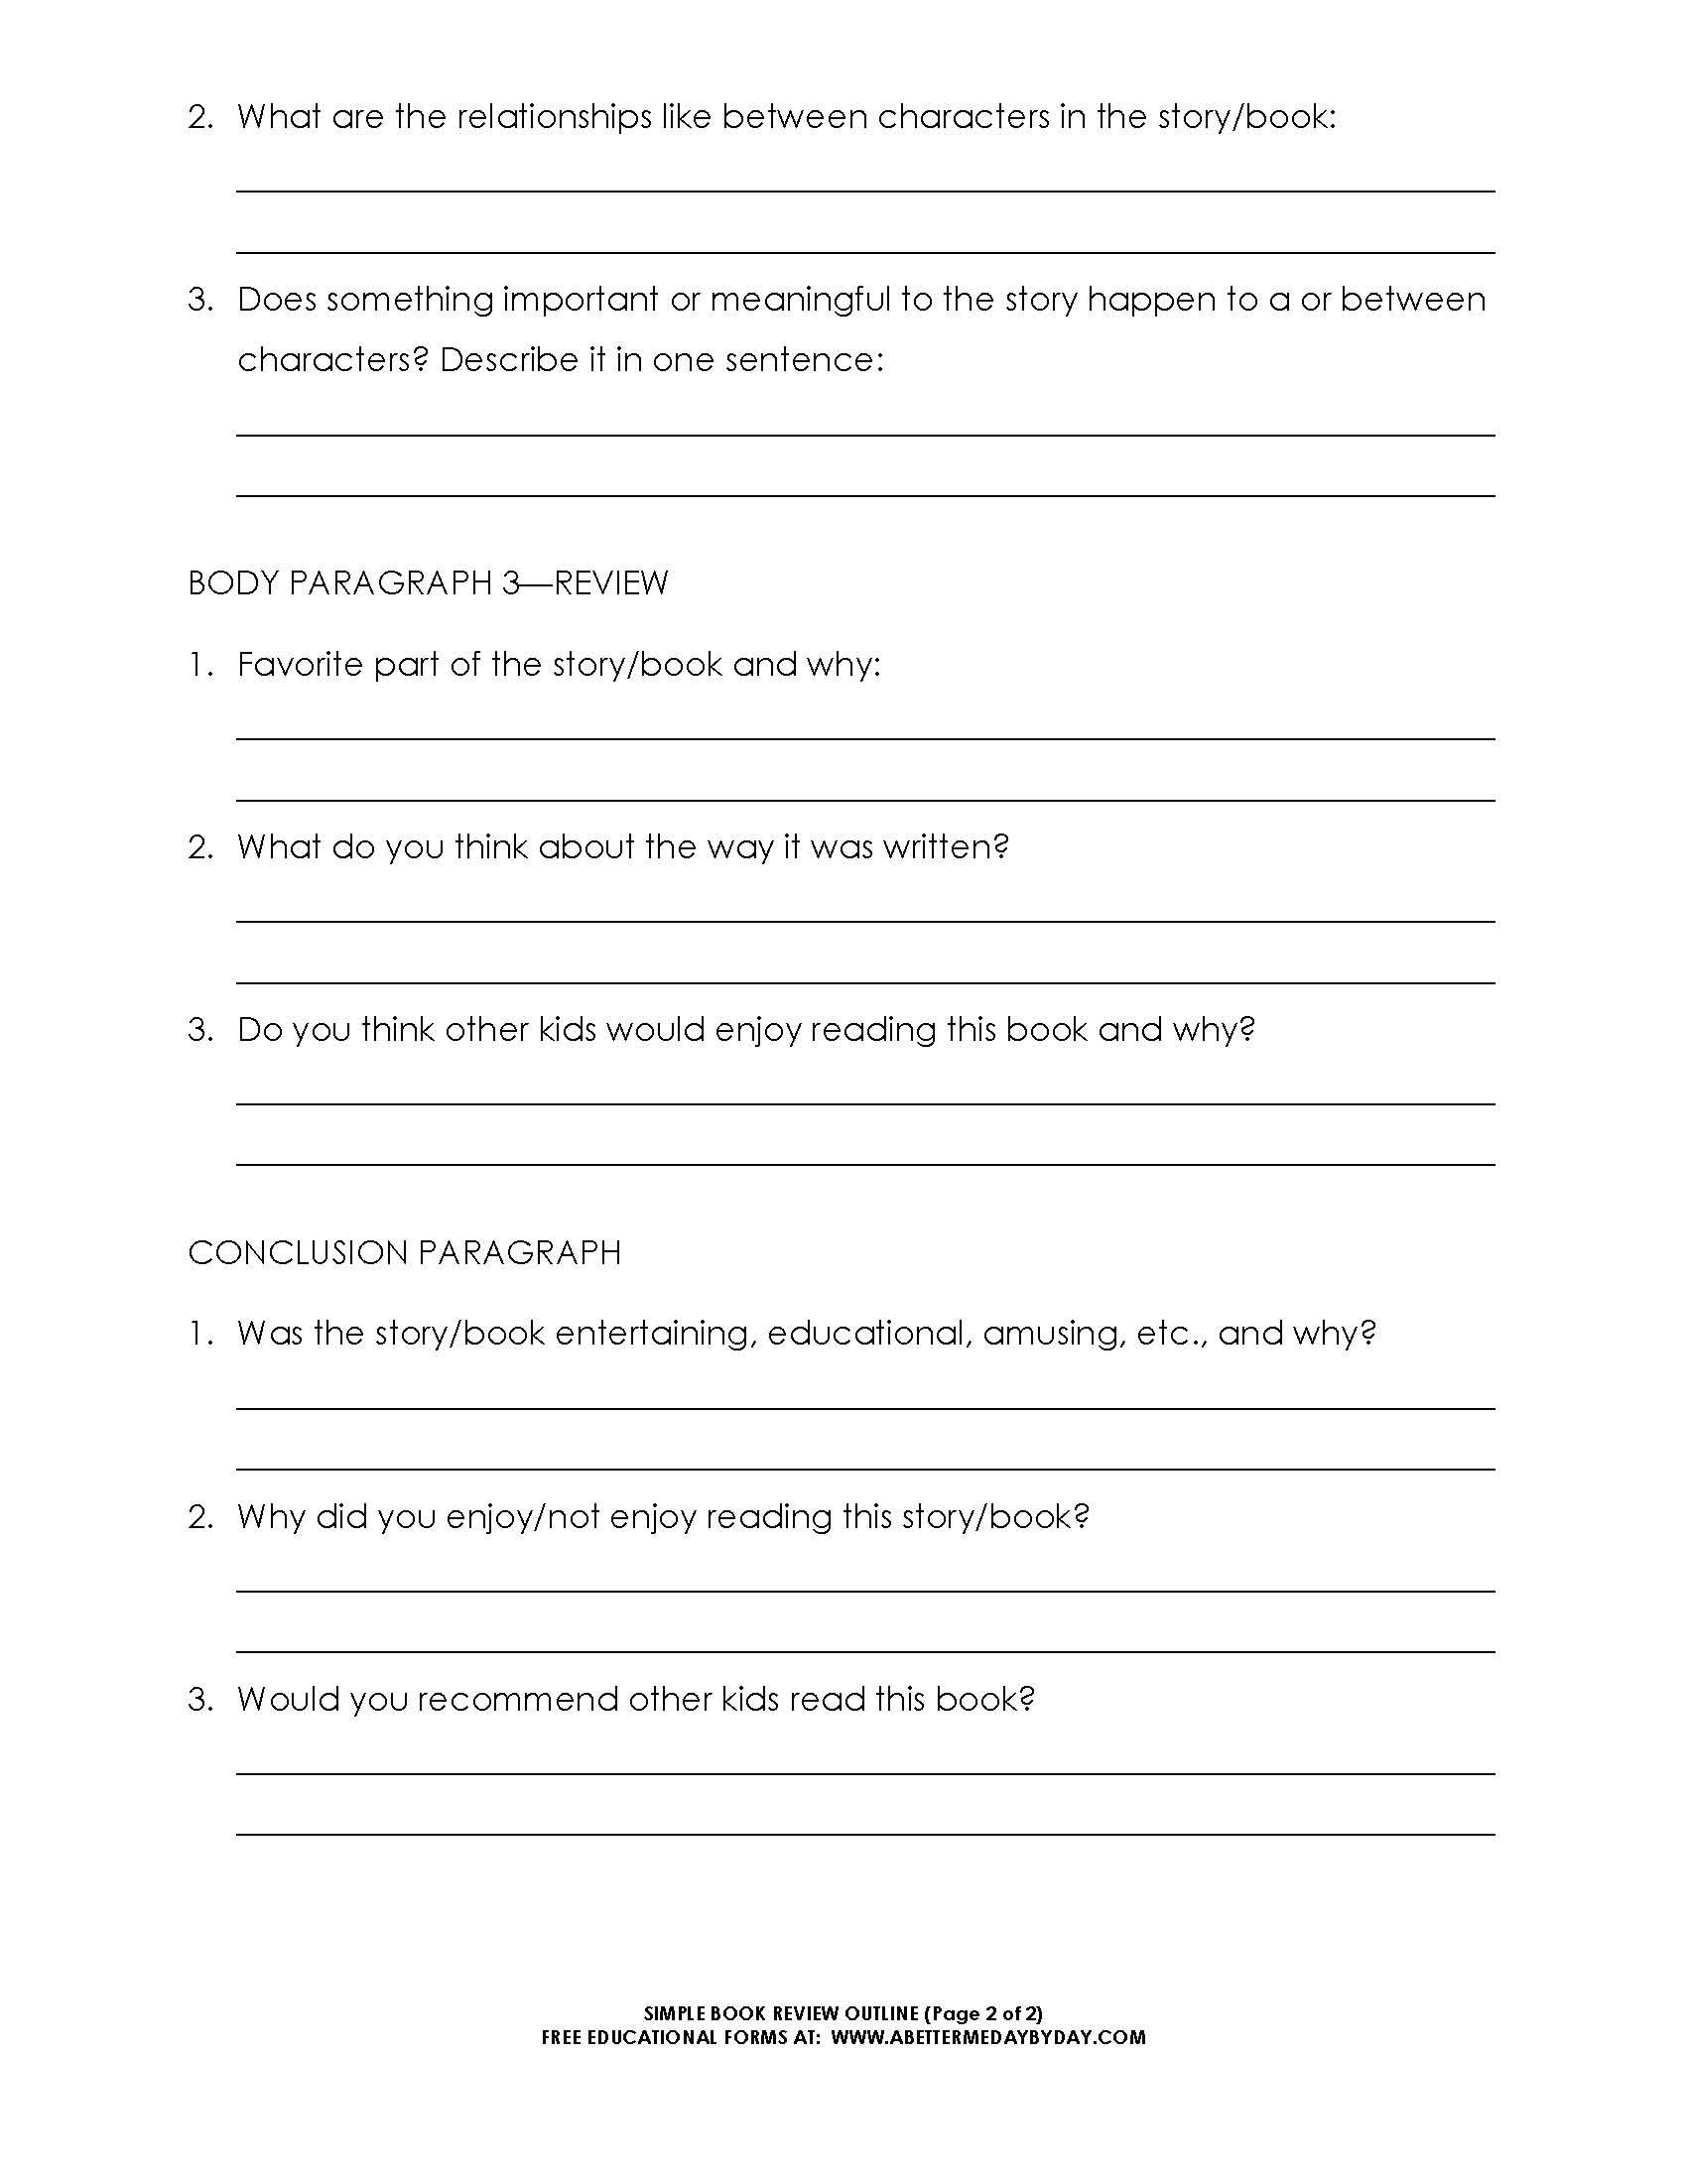 Free simple 5 paragraph book review or report outline for Story outline template for kids